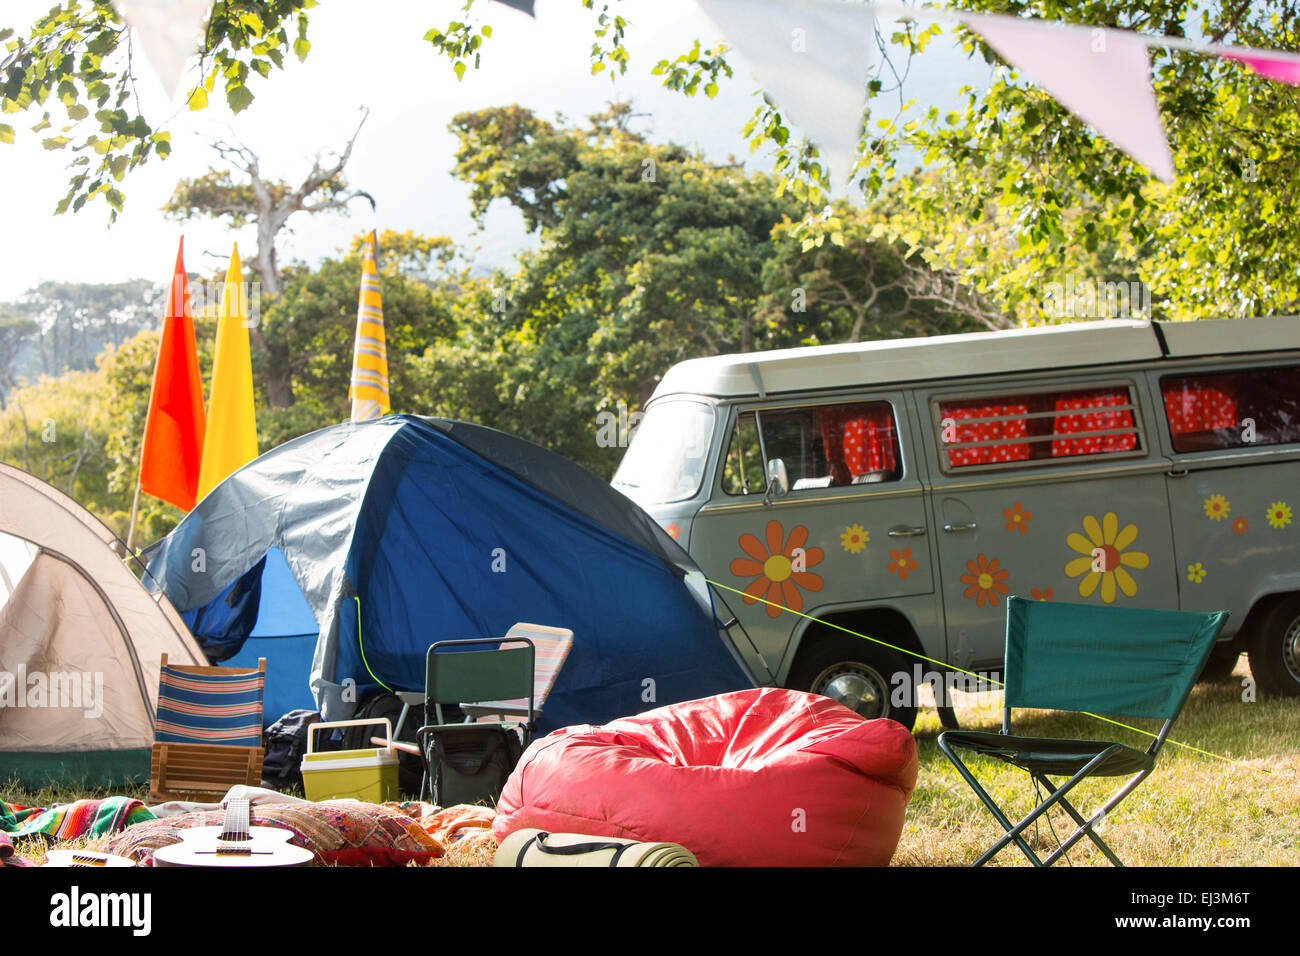 Empty campsite at music festival - Stock Image